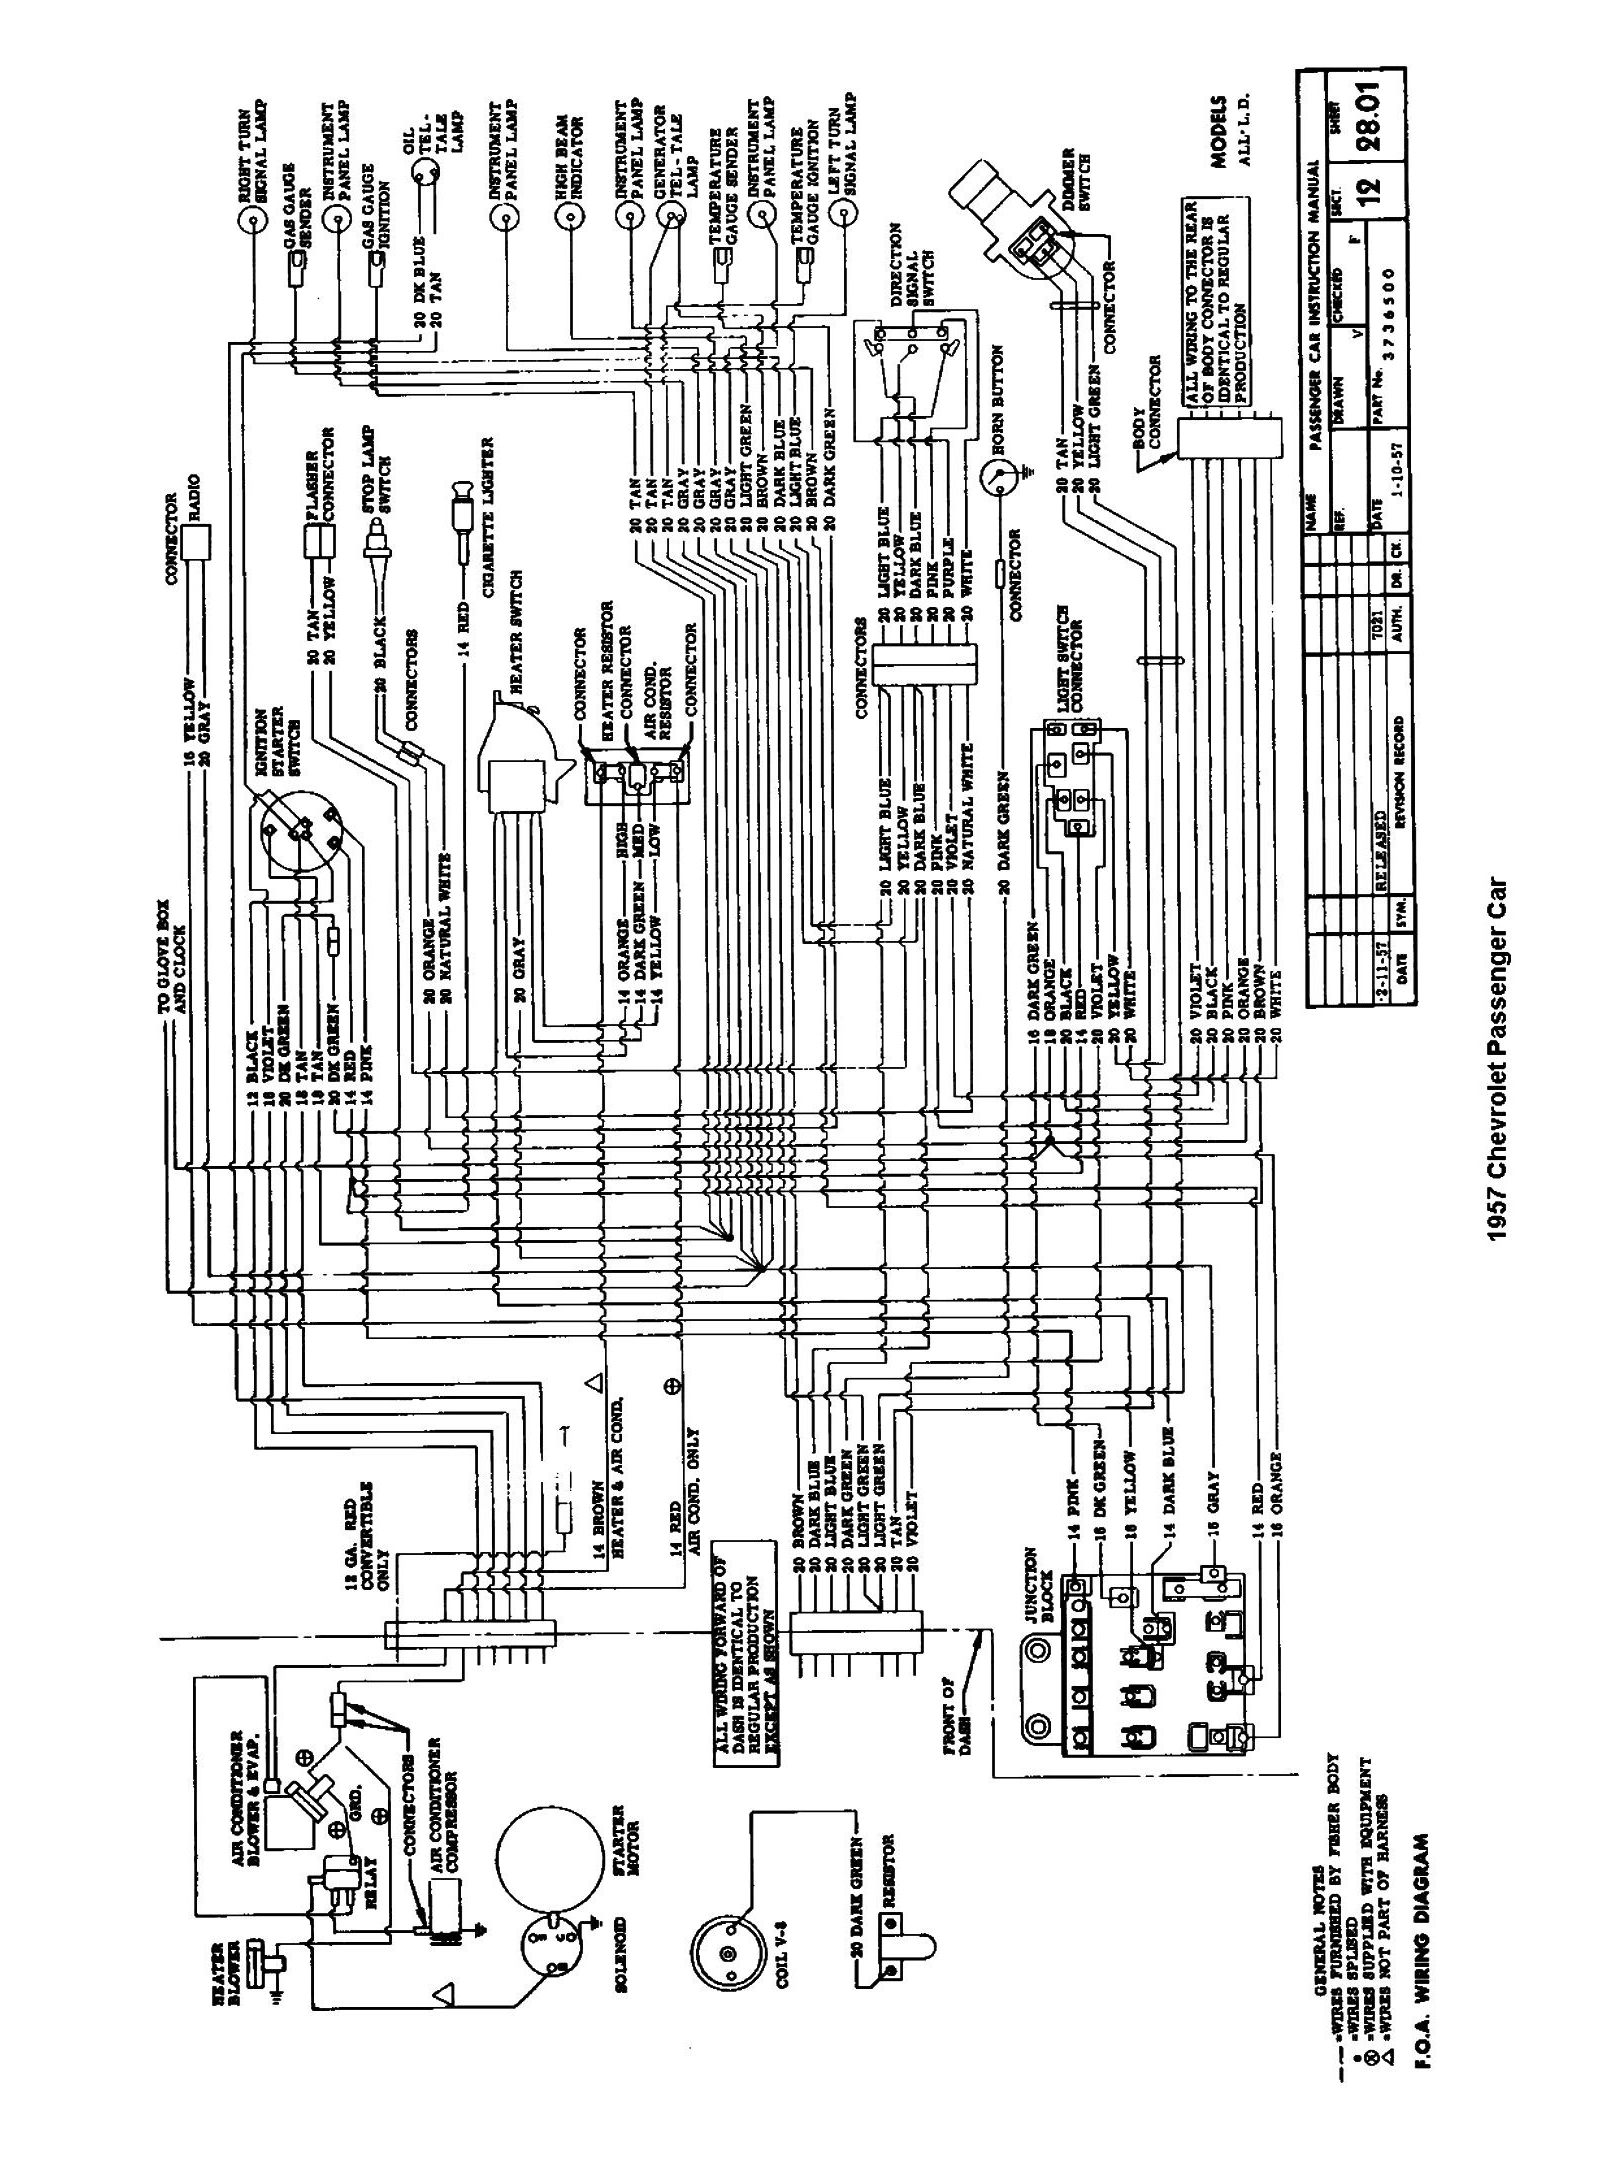 1934 plymouth wiring diagram get free image about wiring [ 1600 x 2164 Pixel ]